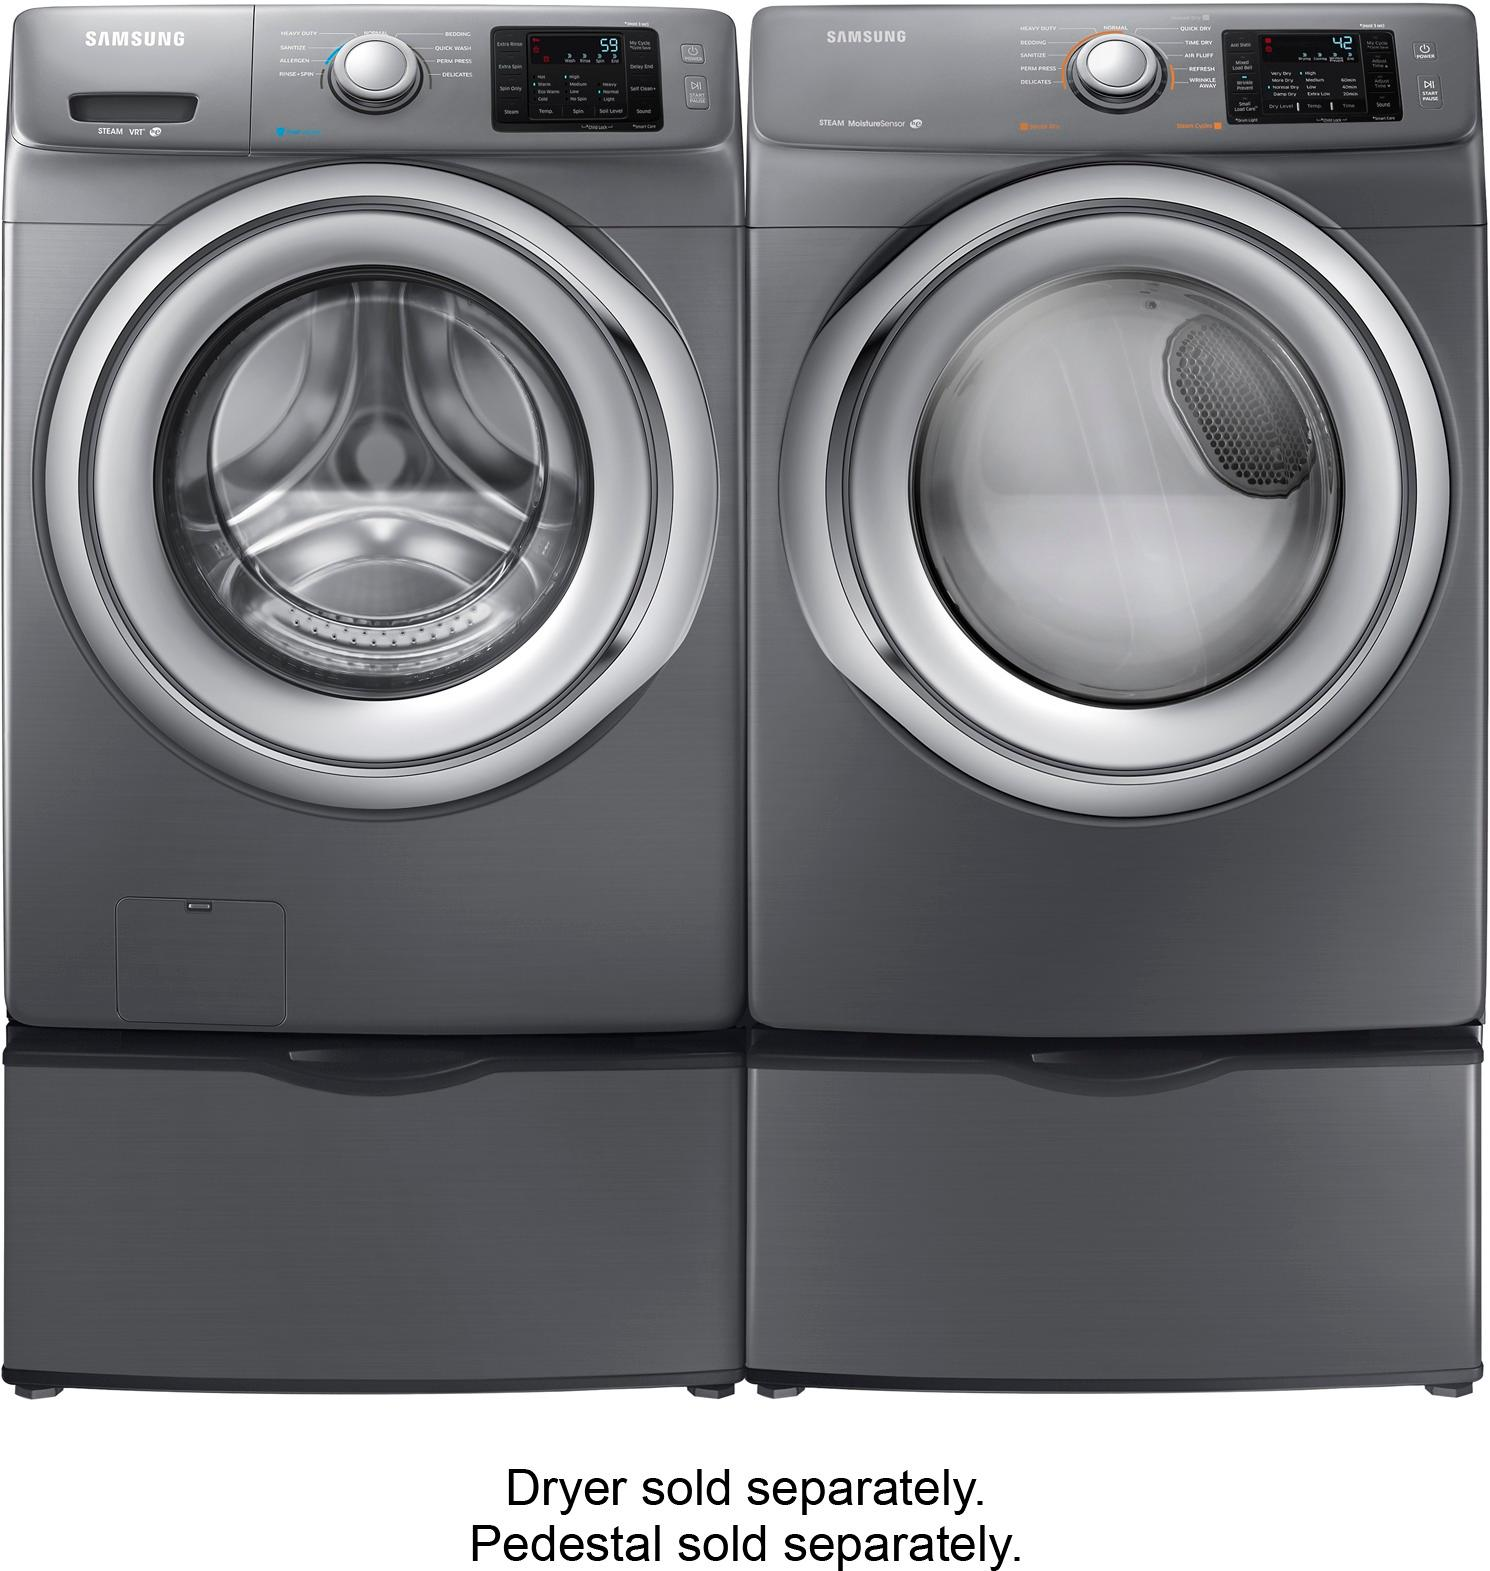 Samsung Front Load Washer Samsung 4 2 Cu Ft 9 Cycle High Efficiency Steam Front Loading Washer Platinum